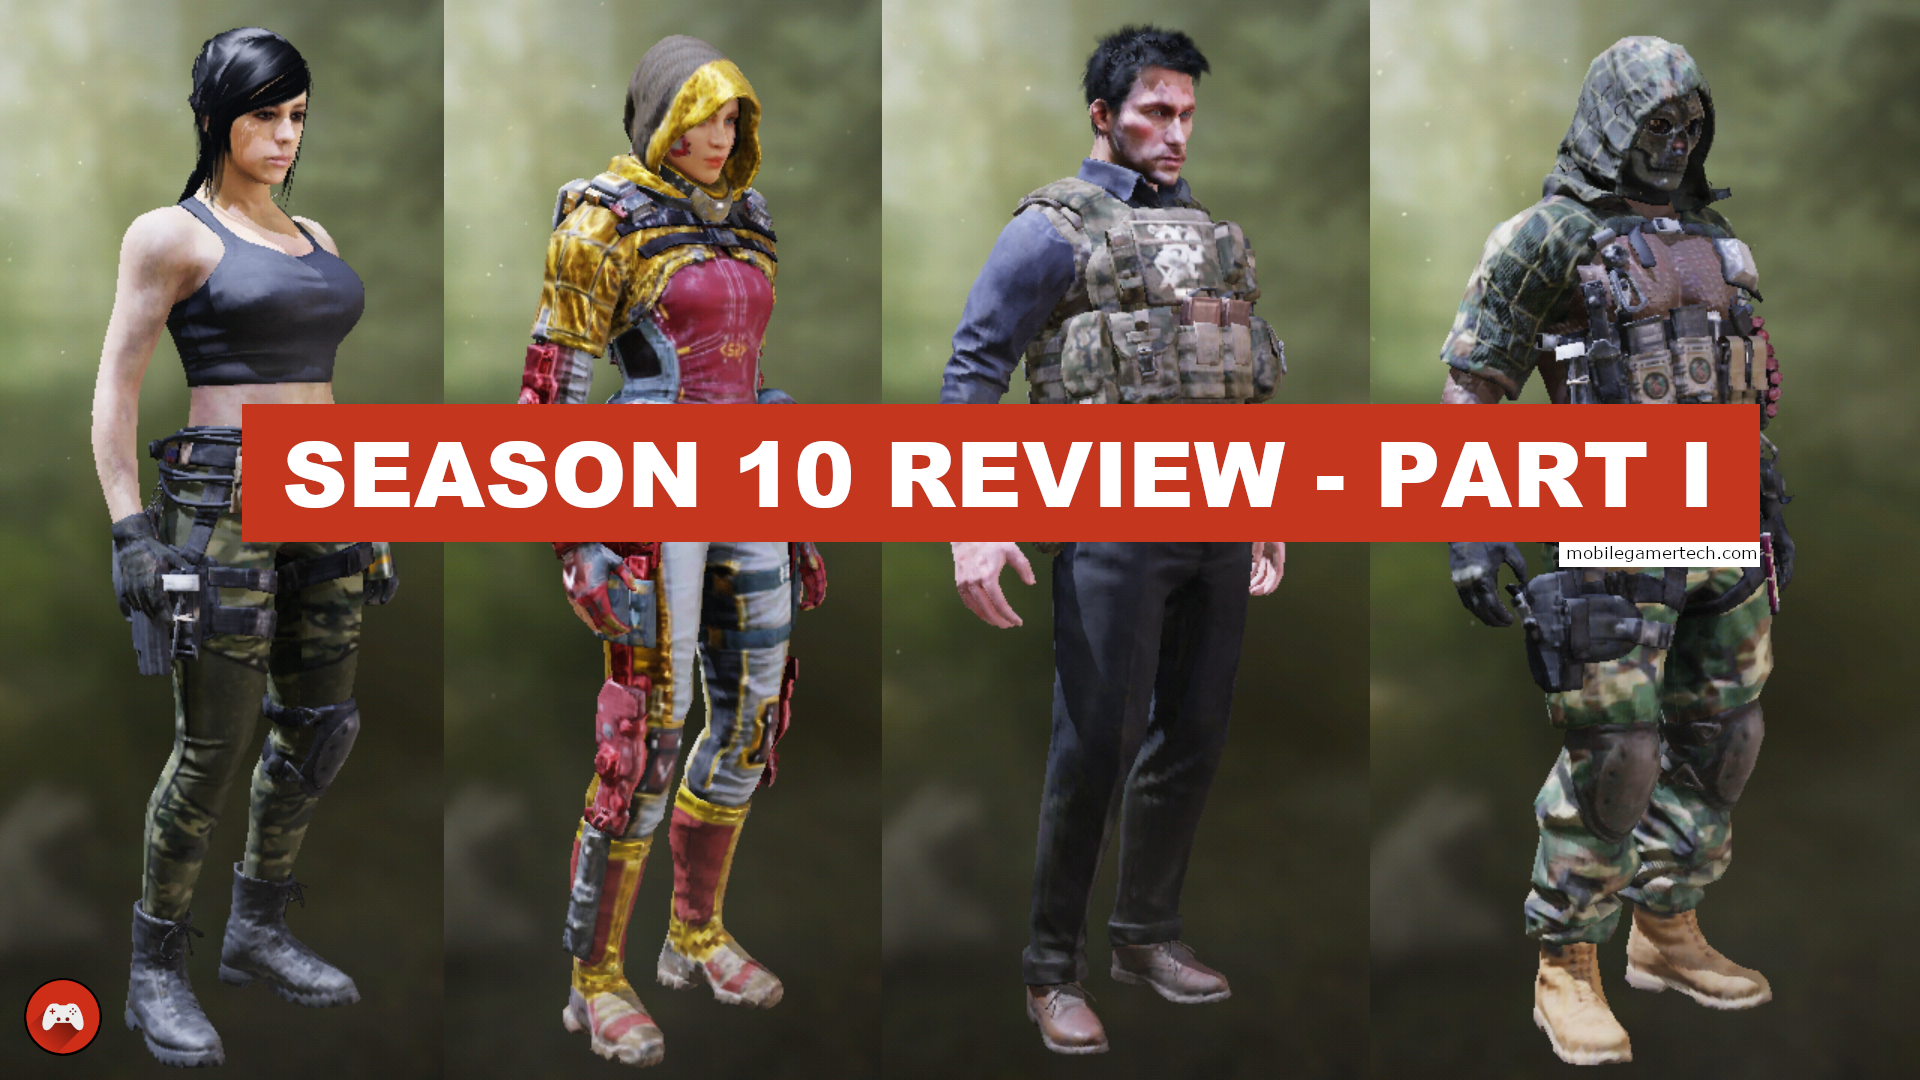 Season 10 review part 1